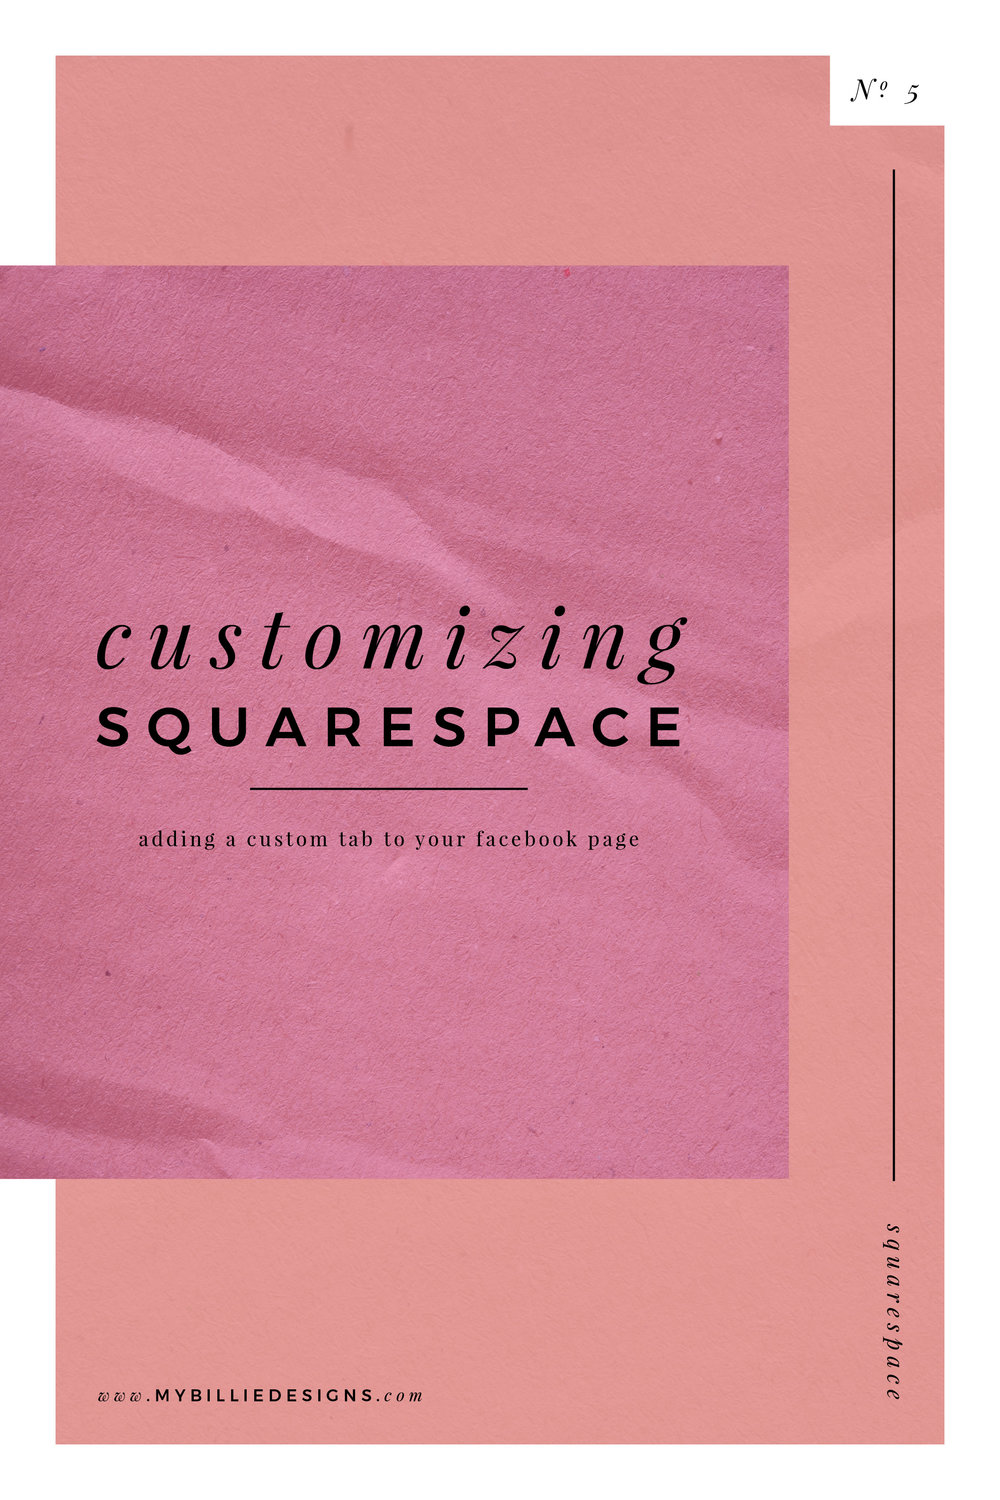 customize squarespace facebook tab branding